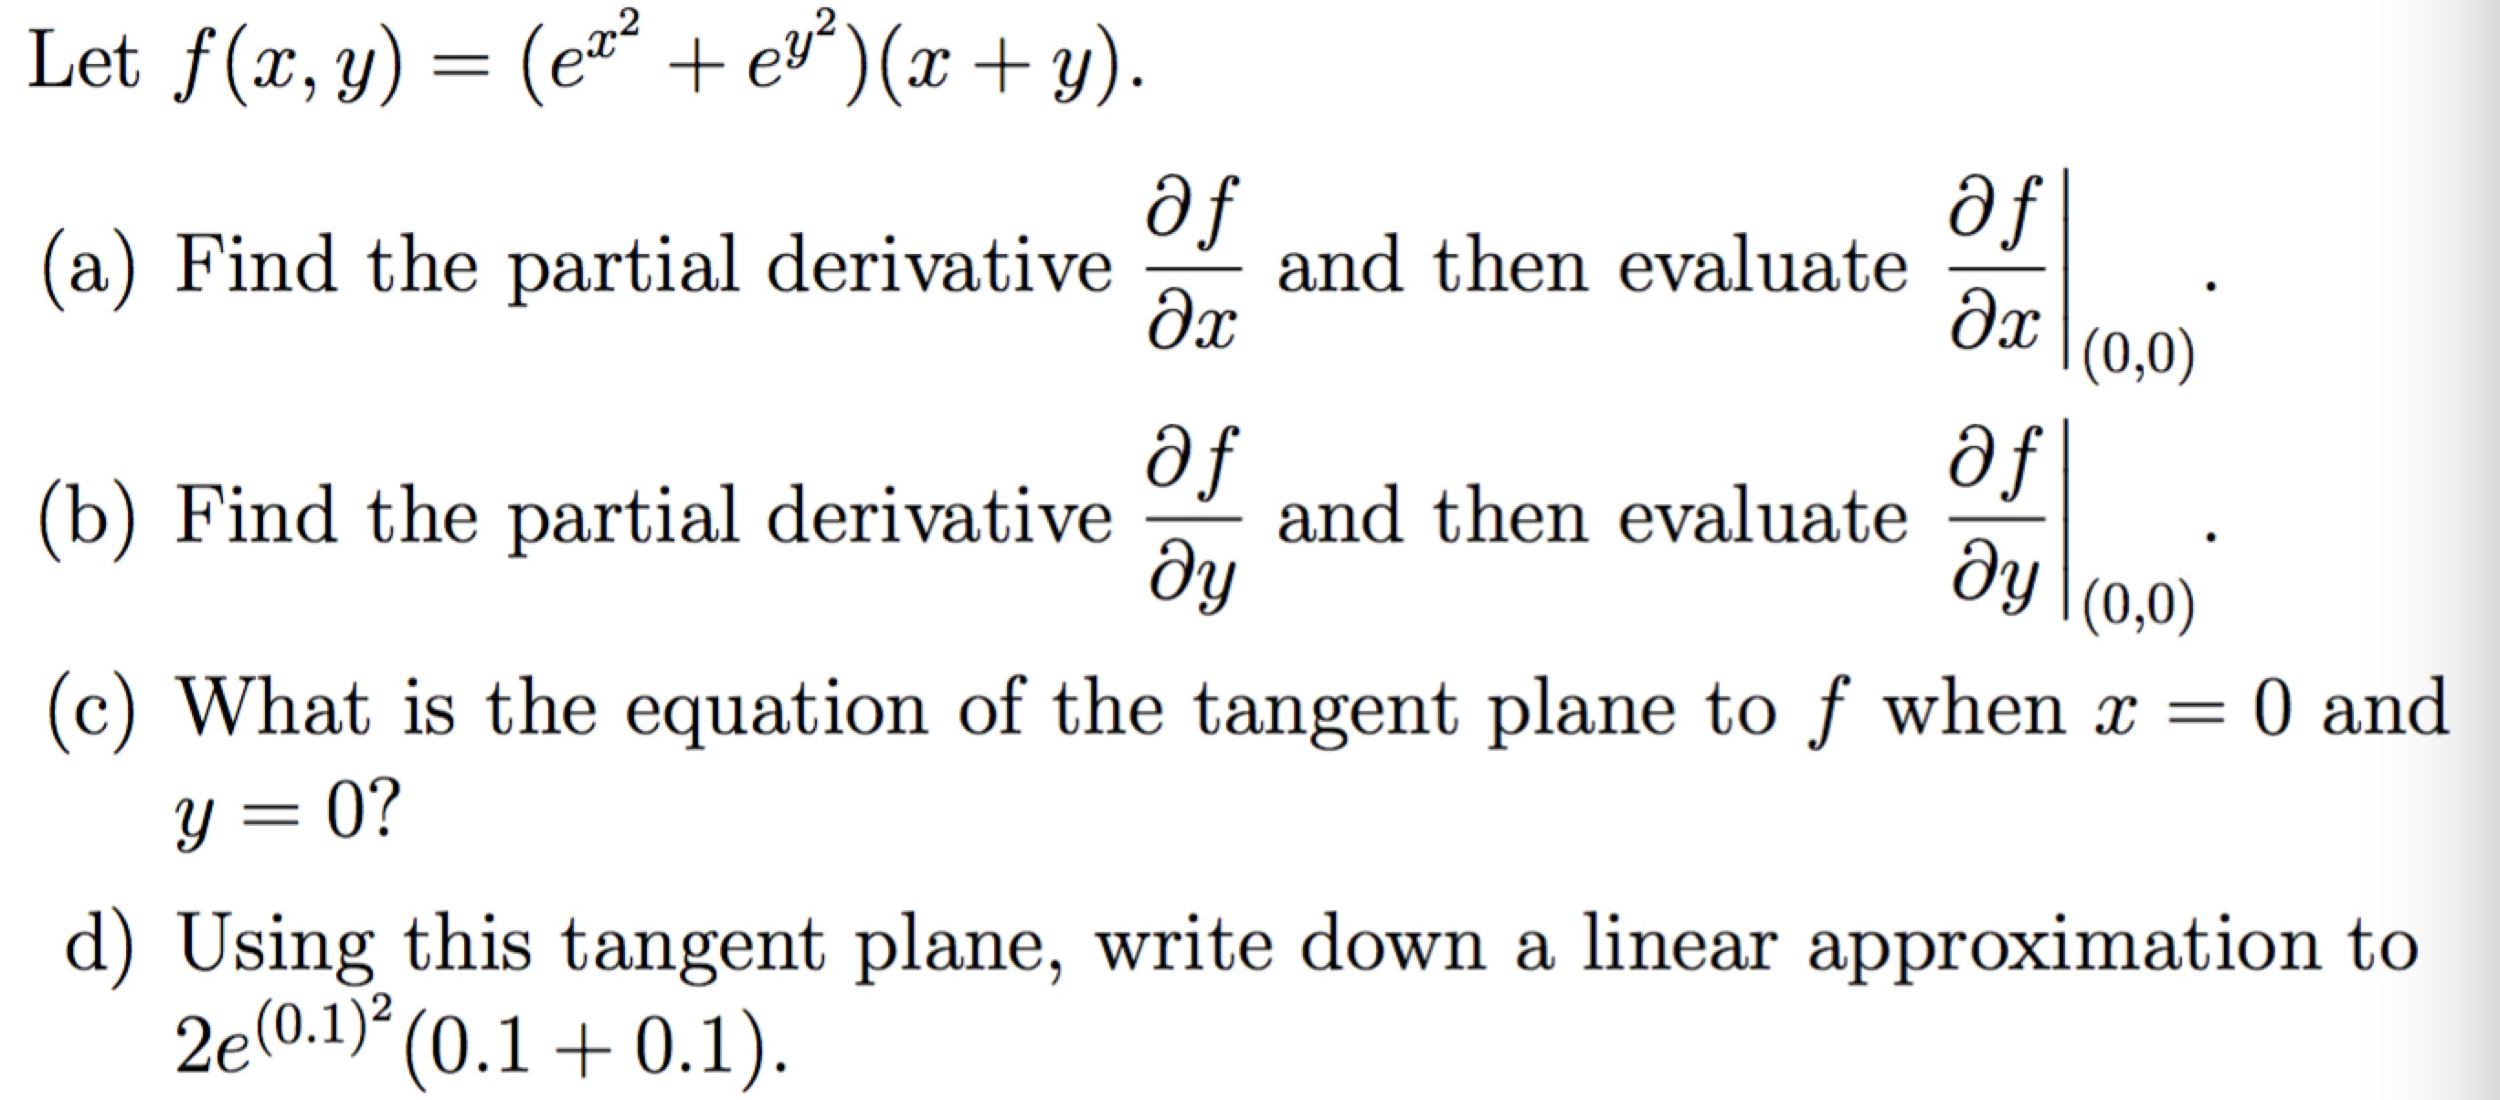 how to find the derivative of x 2 4